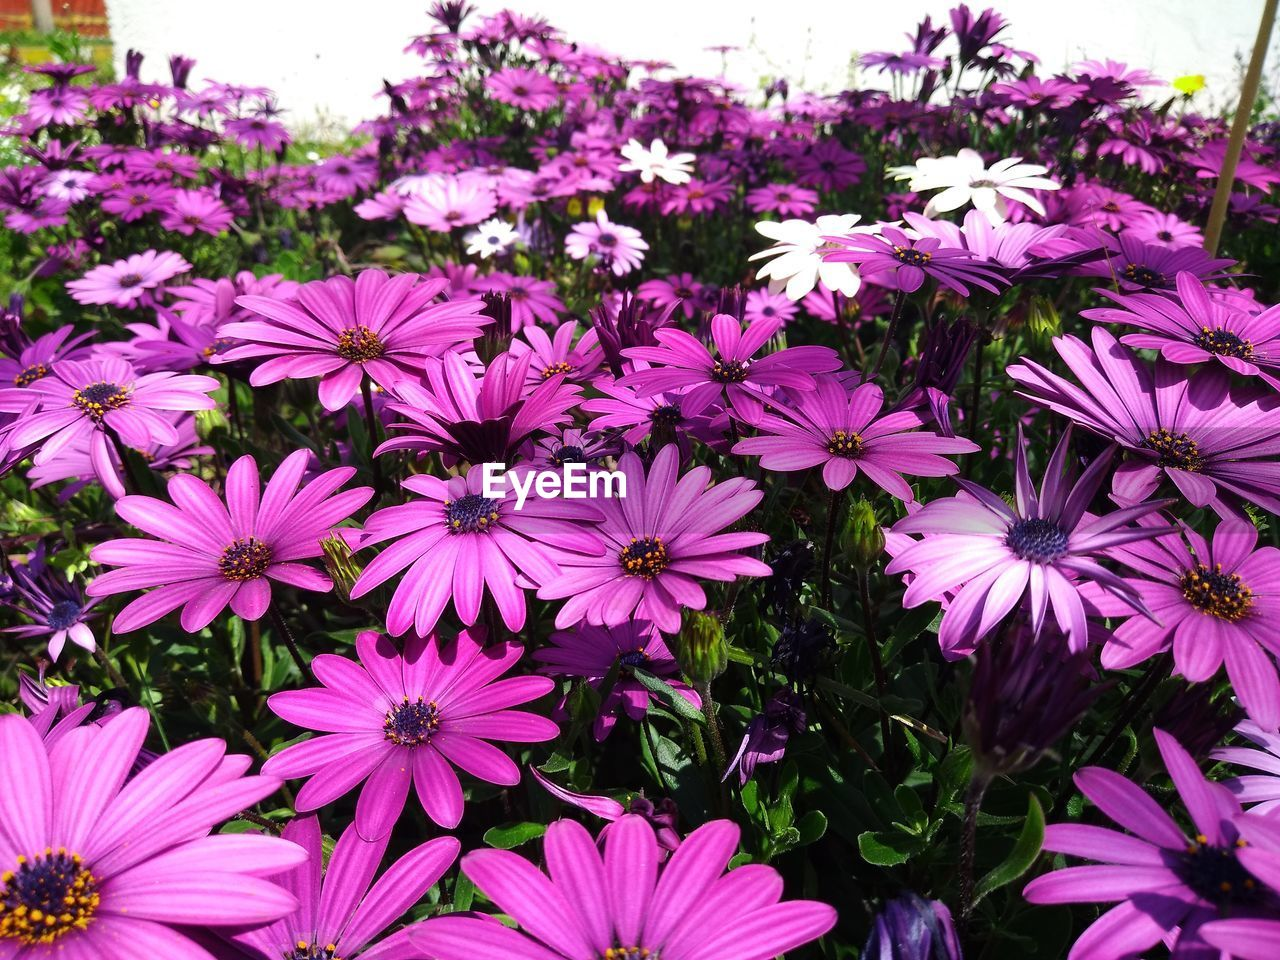 flowering plant, flower, plant, growth, vulnerability, freshness, fragility, petal, beauty in nature, inflorescence, flower head, close-up, pink color, nature, osteospermum, no people, day, purple, botany, pollen, outdoors, flowerbed